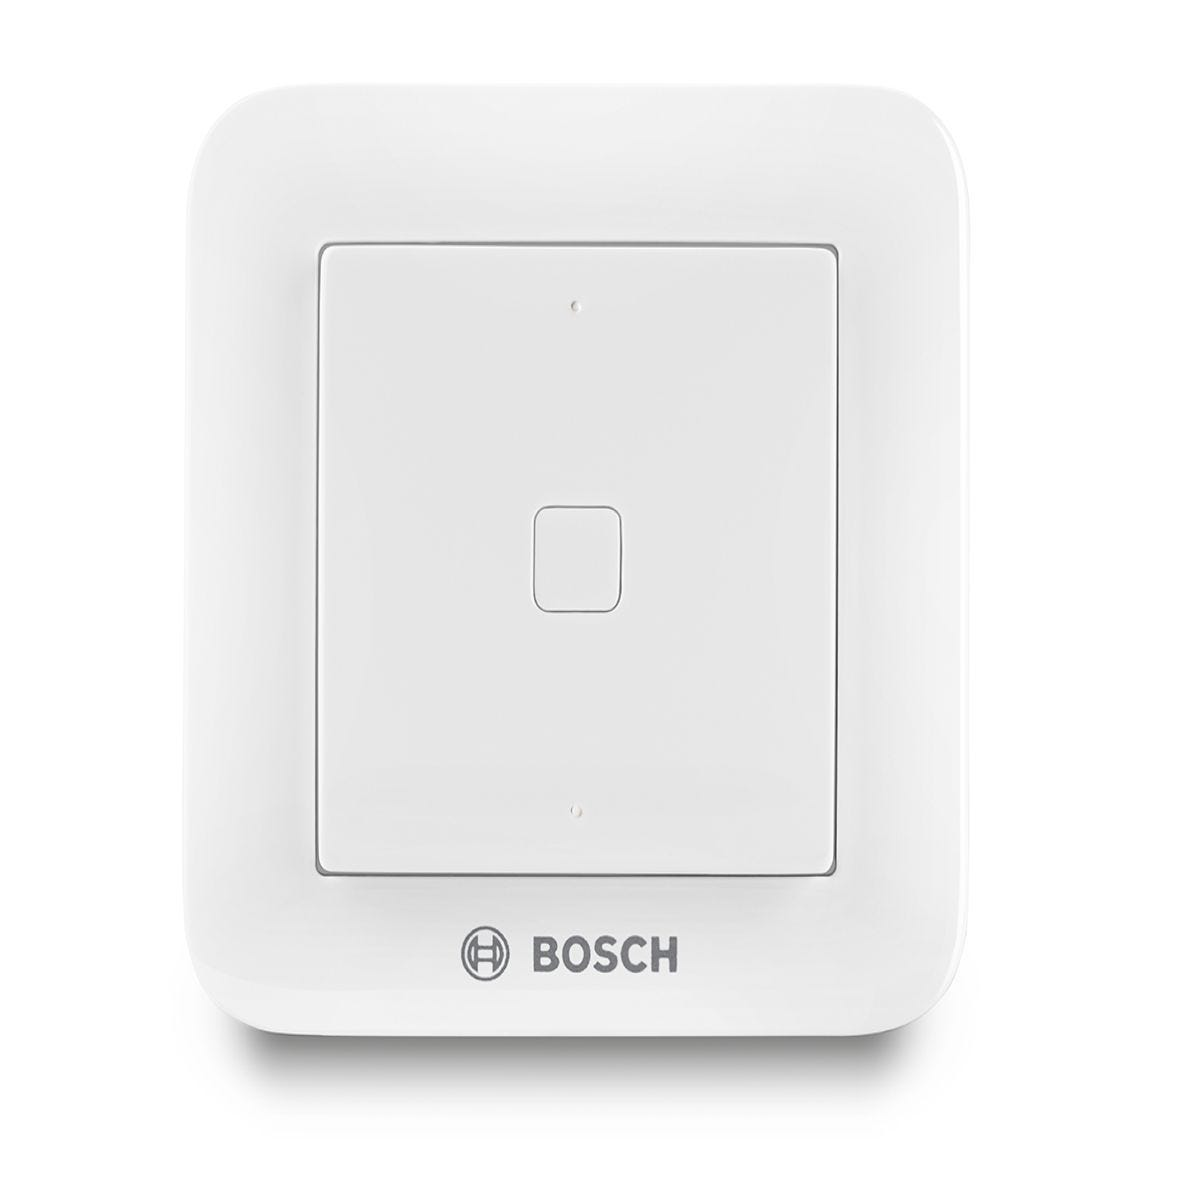 Bosch Smart Home Universal Switch